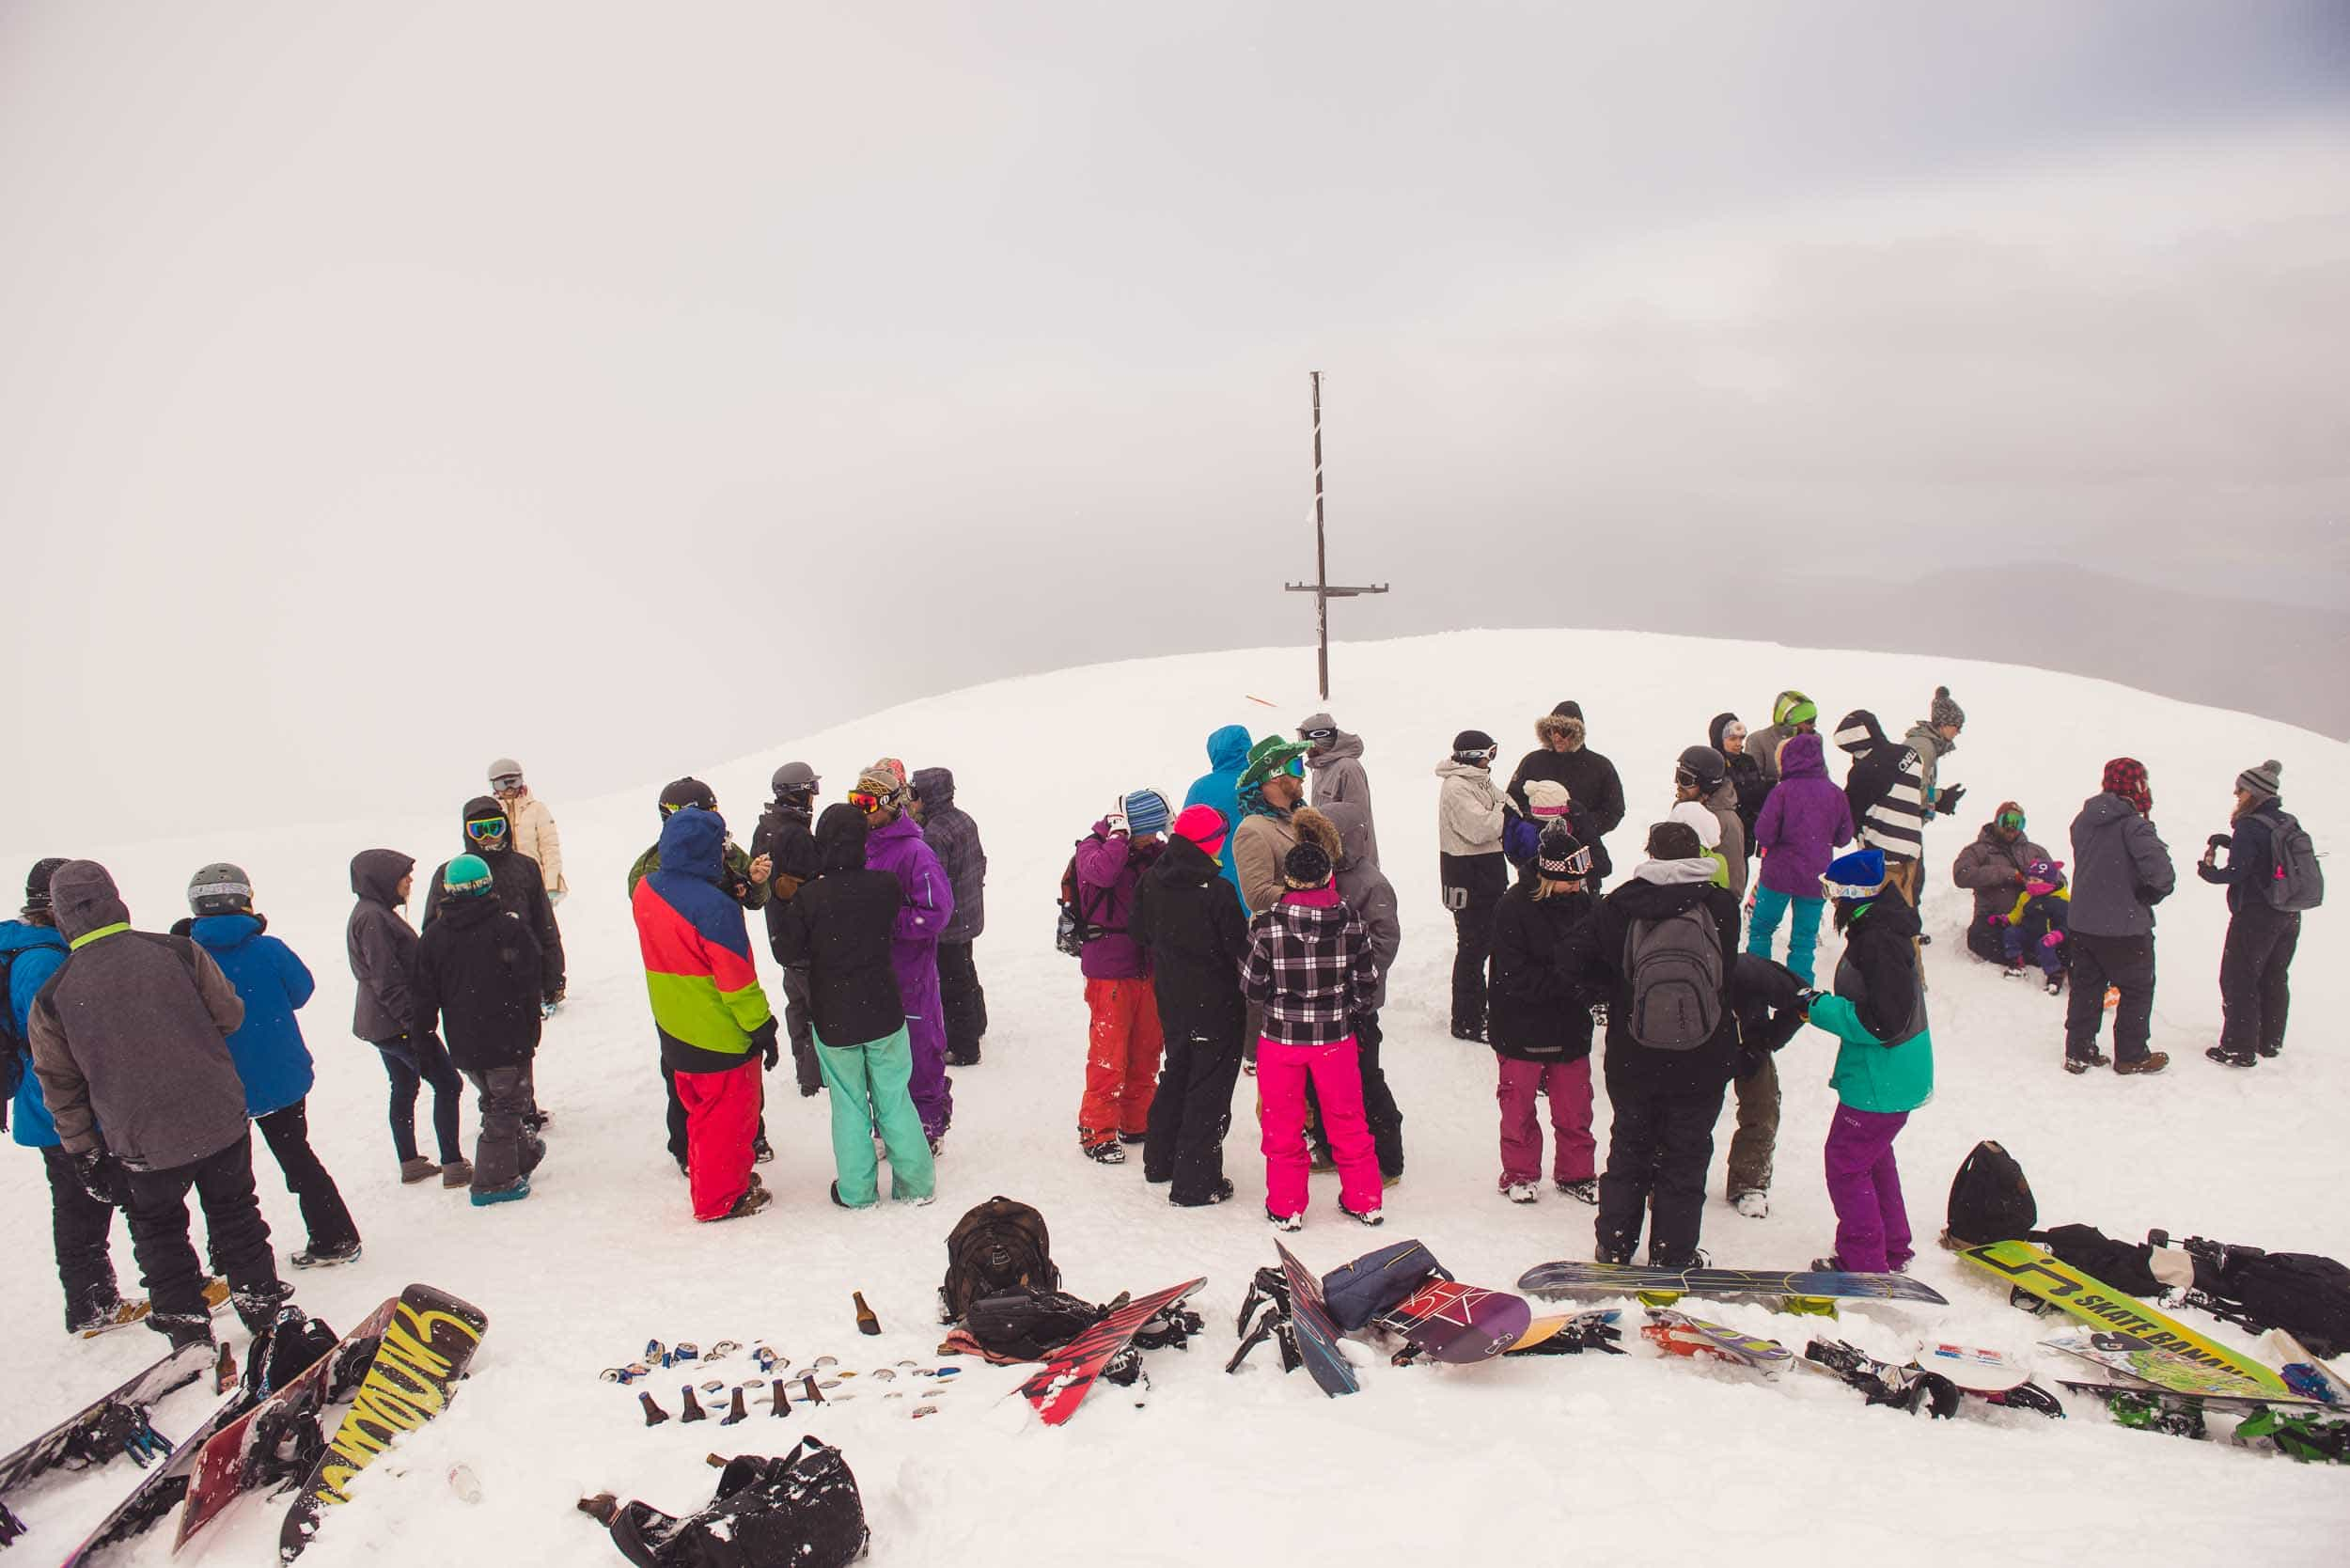 Now this is what I call a Queenstown Winter Wedding!!  At Coronet Peak...on snowboards...in a snow storm!! fallon photography